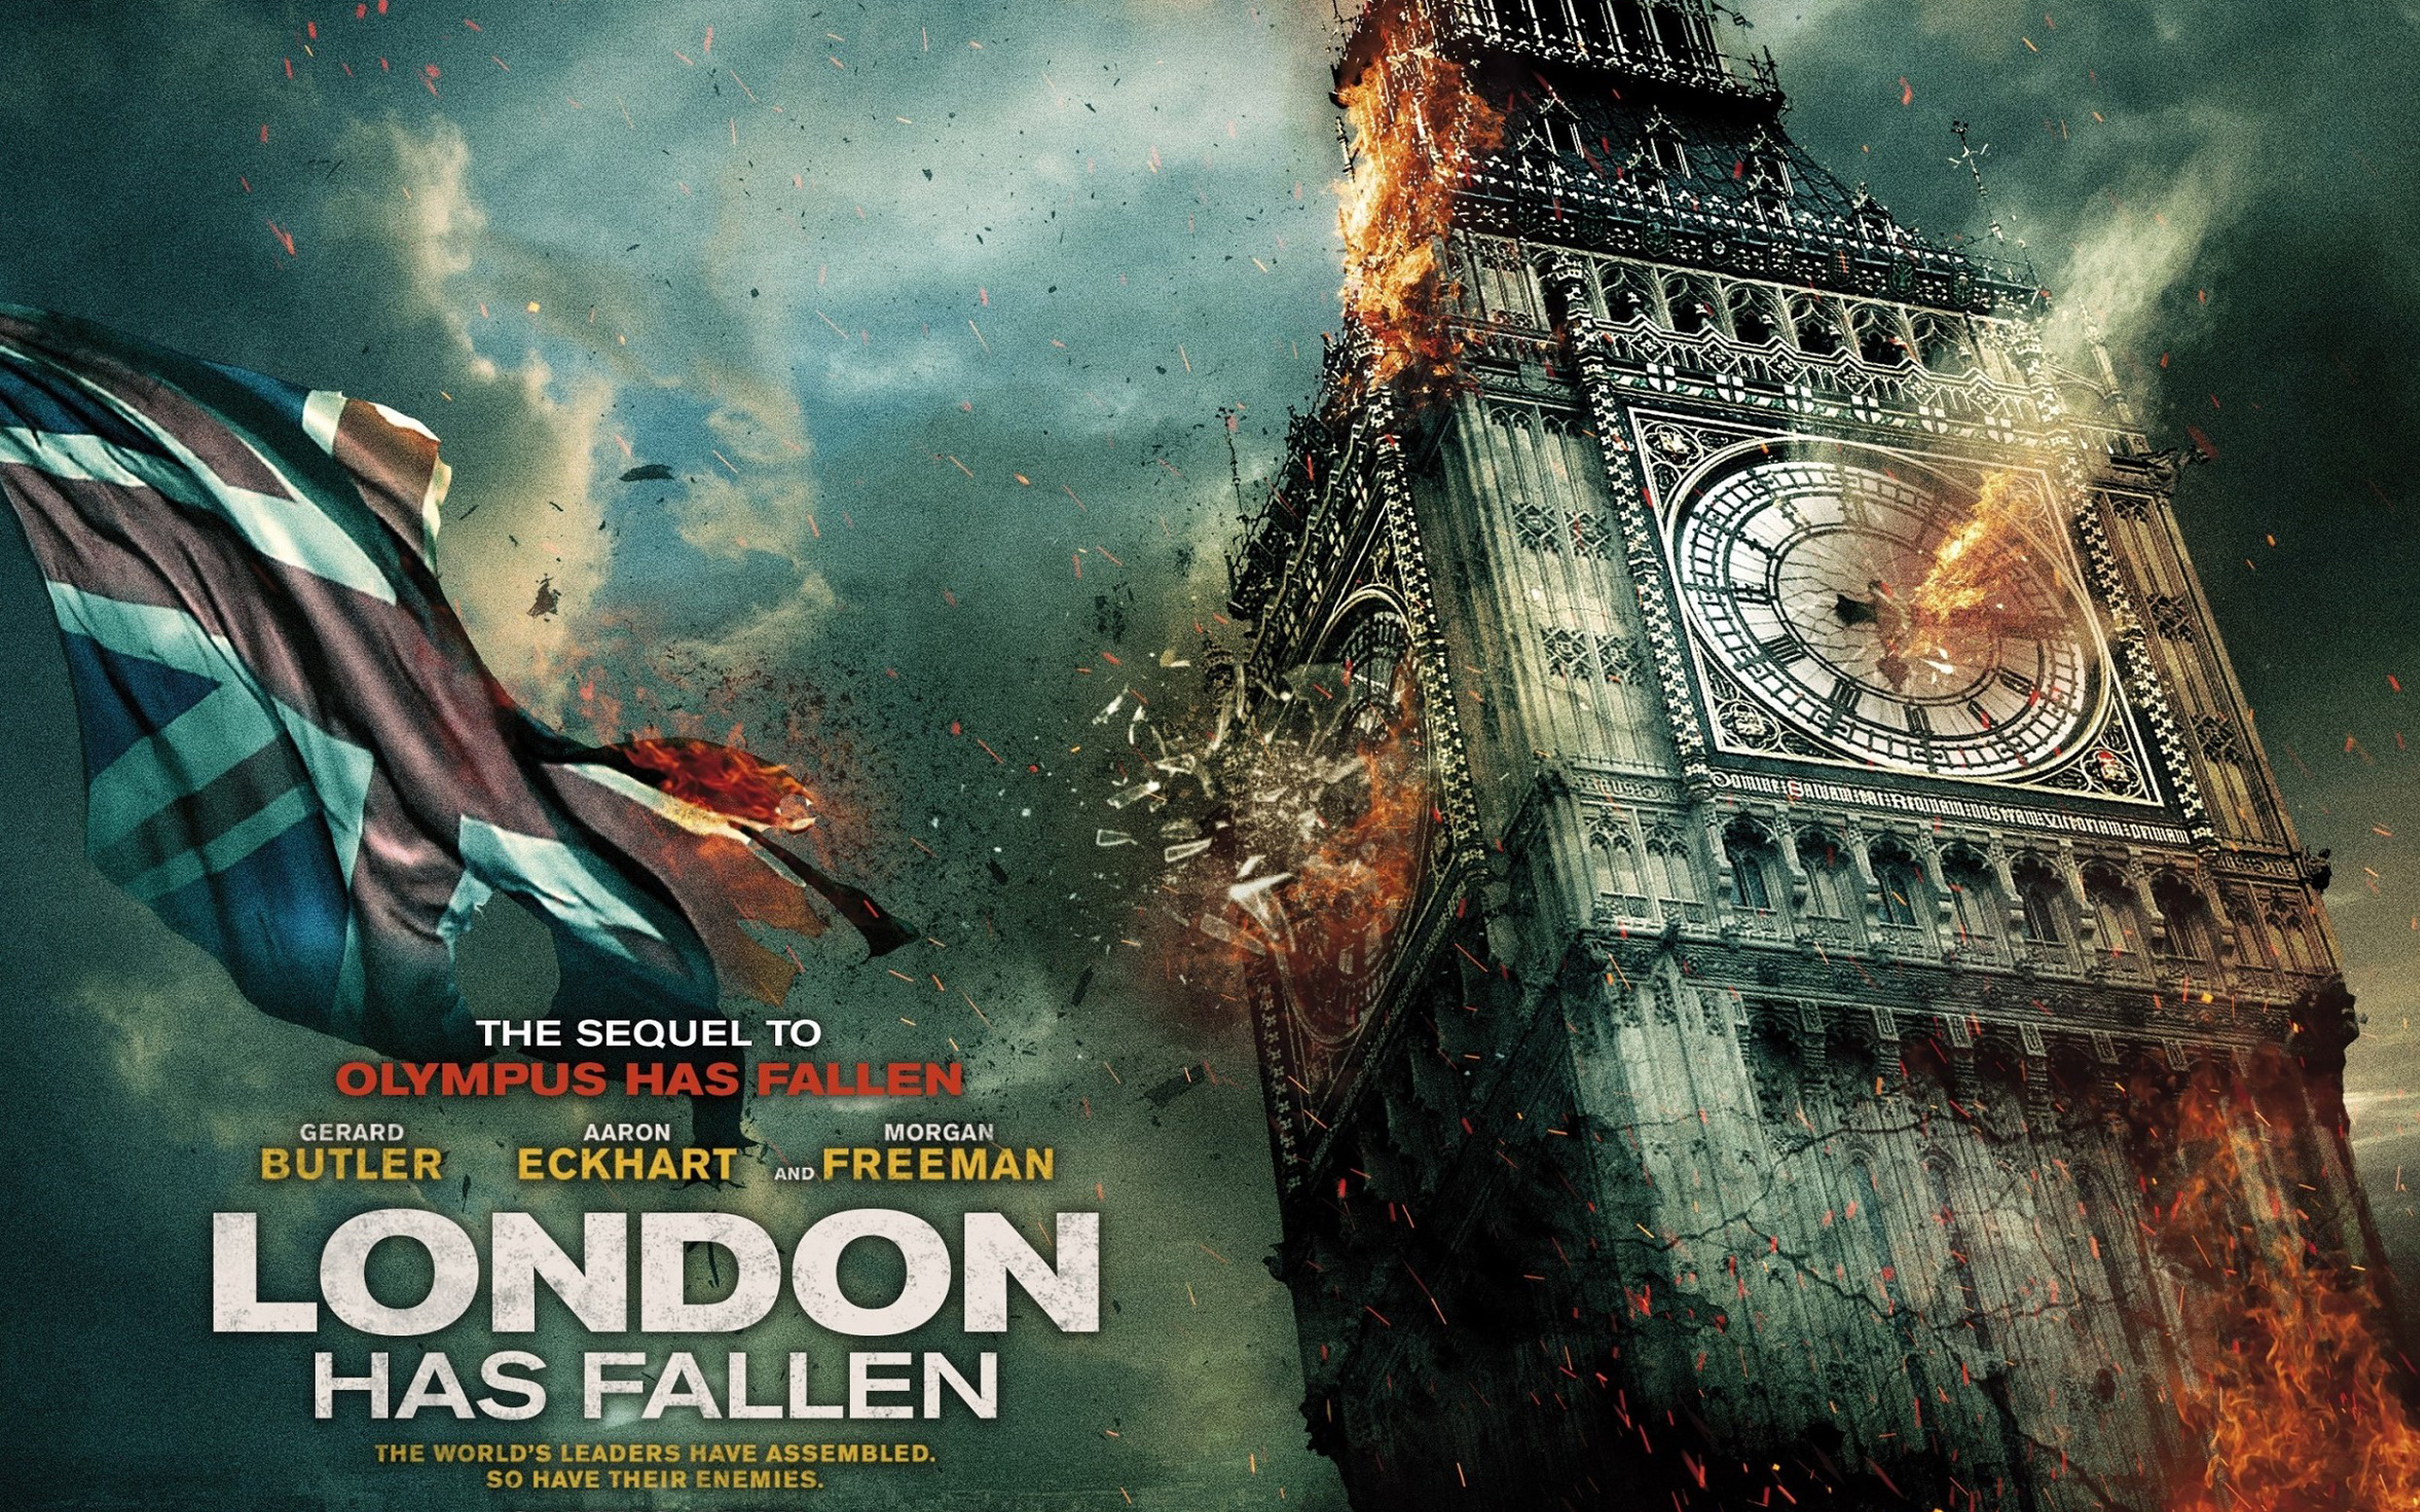 london has fallen movie wallpaper background 52336 2560x1600 px